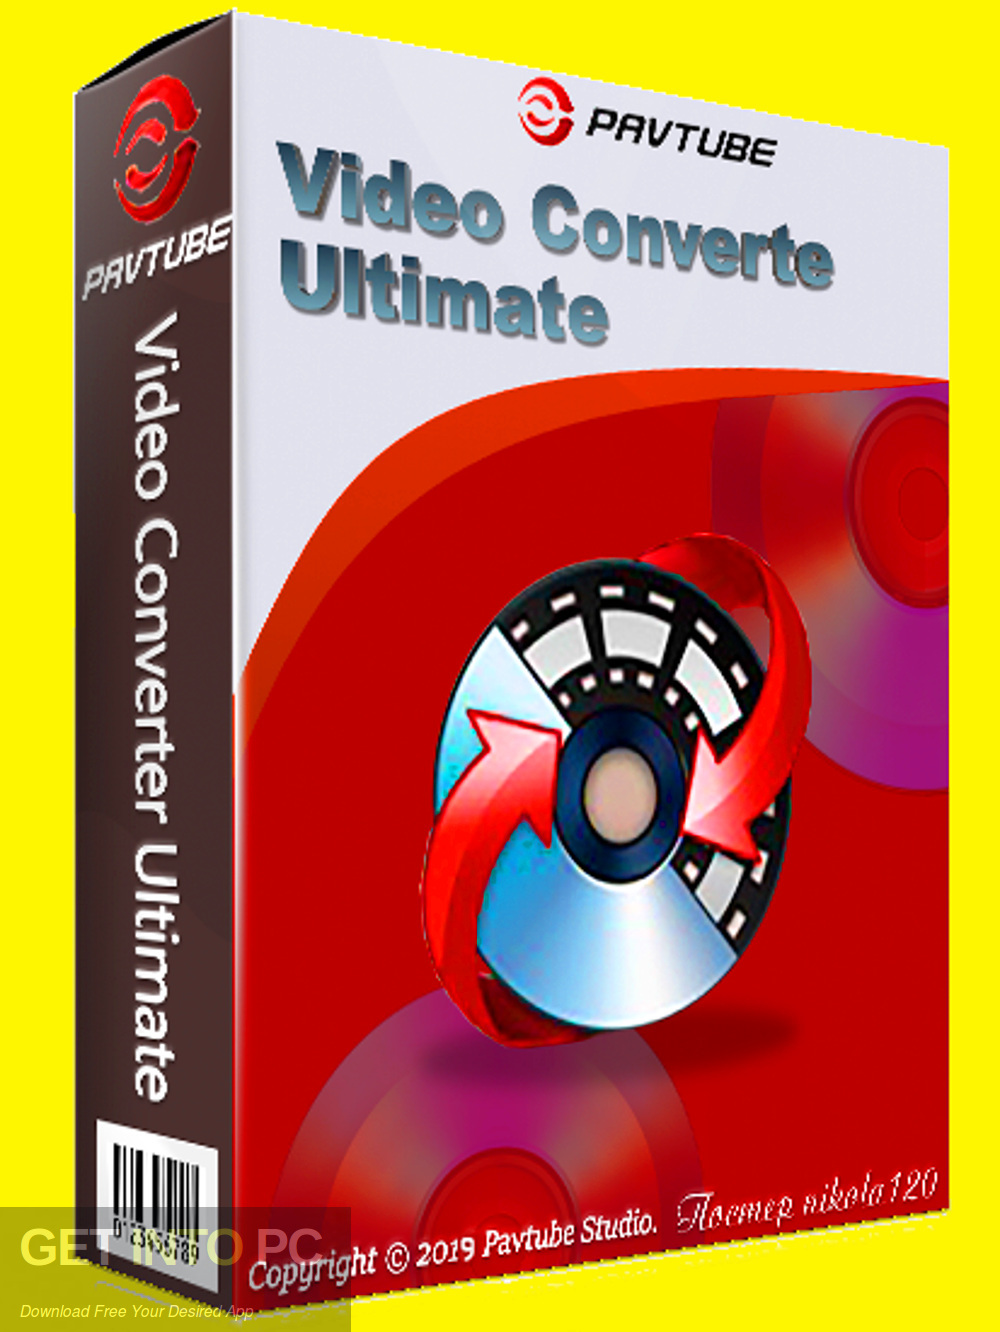 Pavtube Video Converter Ultimate 2019 Download-GetintoPC.com for free